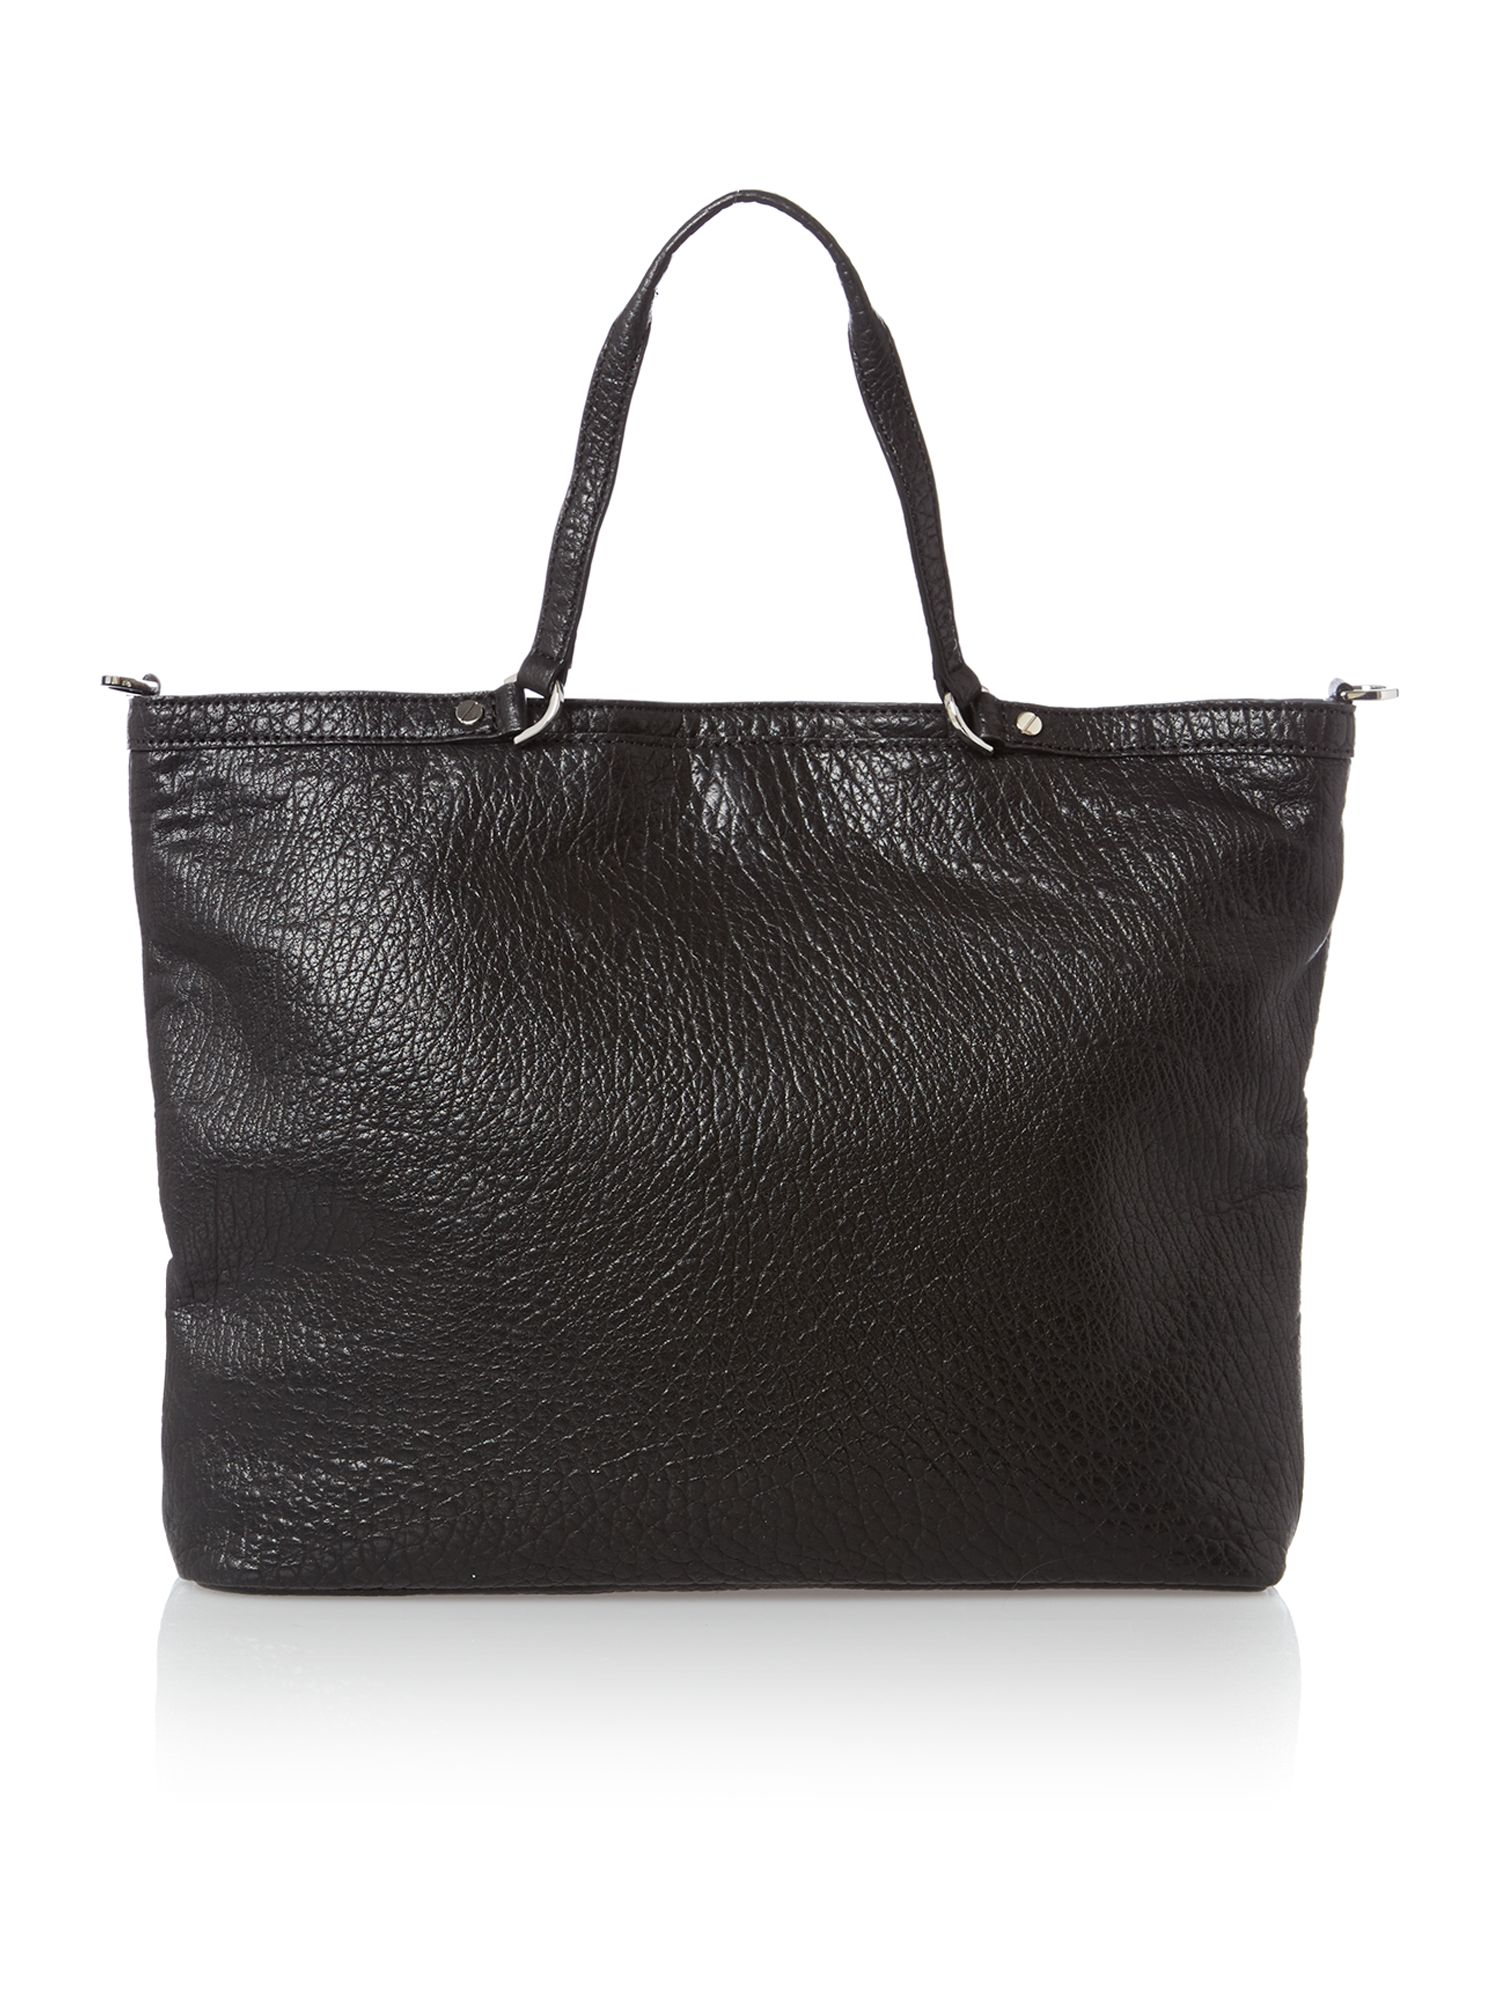 Channing black large tote bag